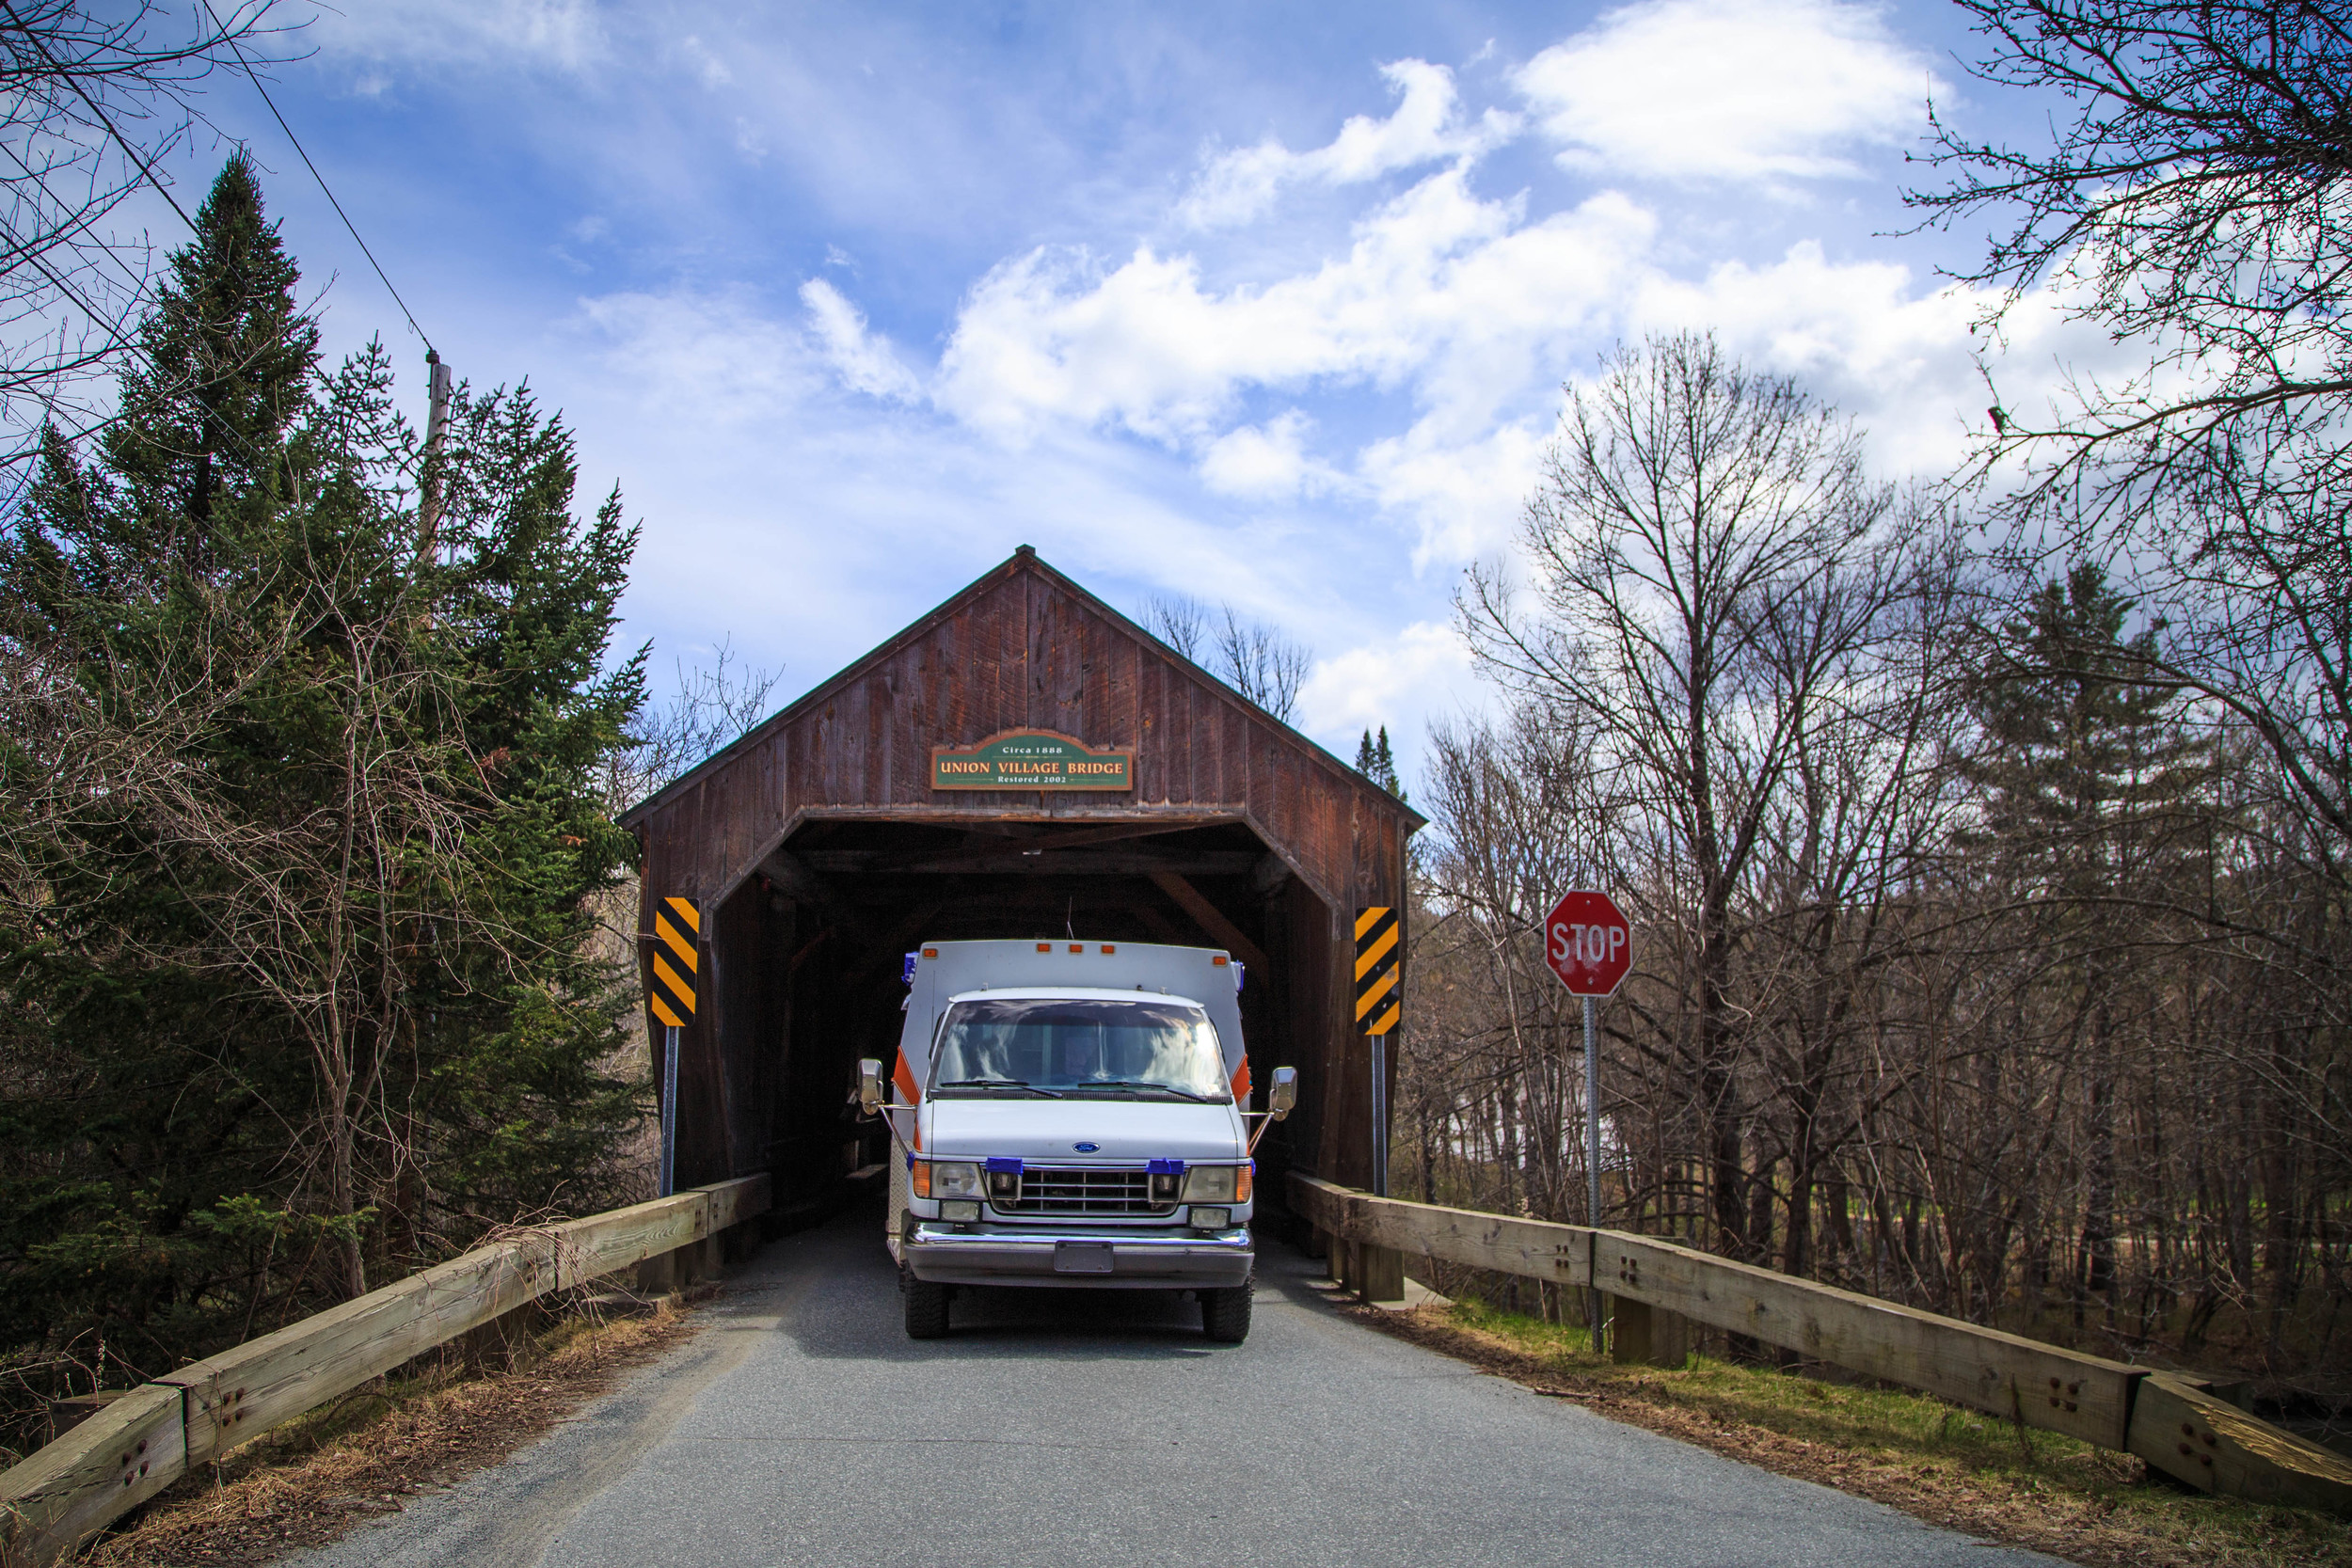 Campbulance's first covered bridge!